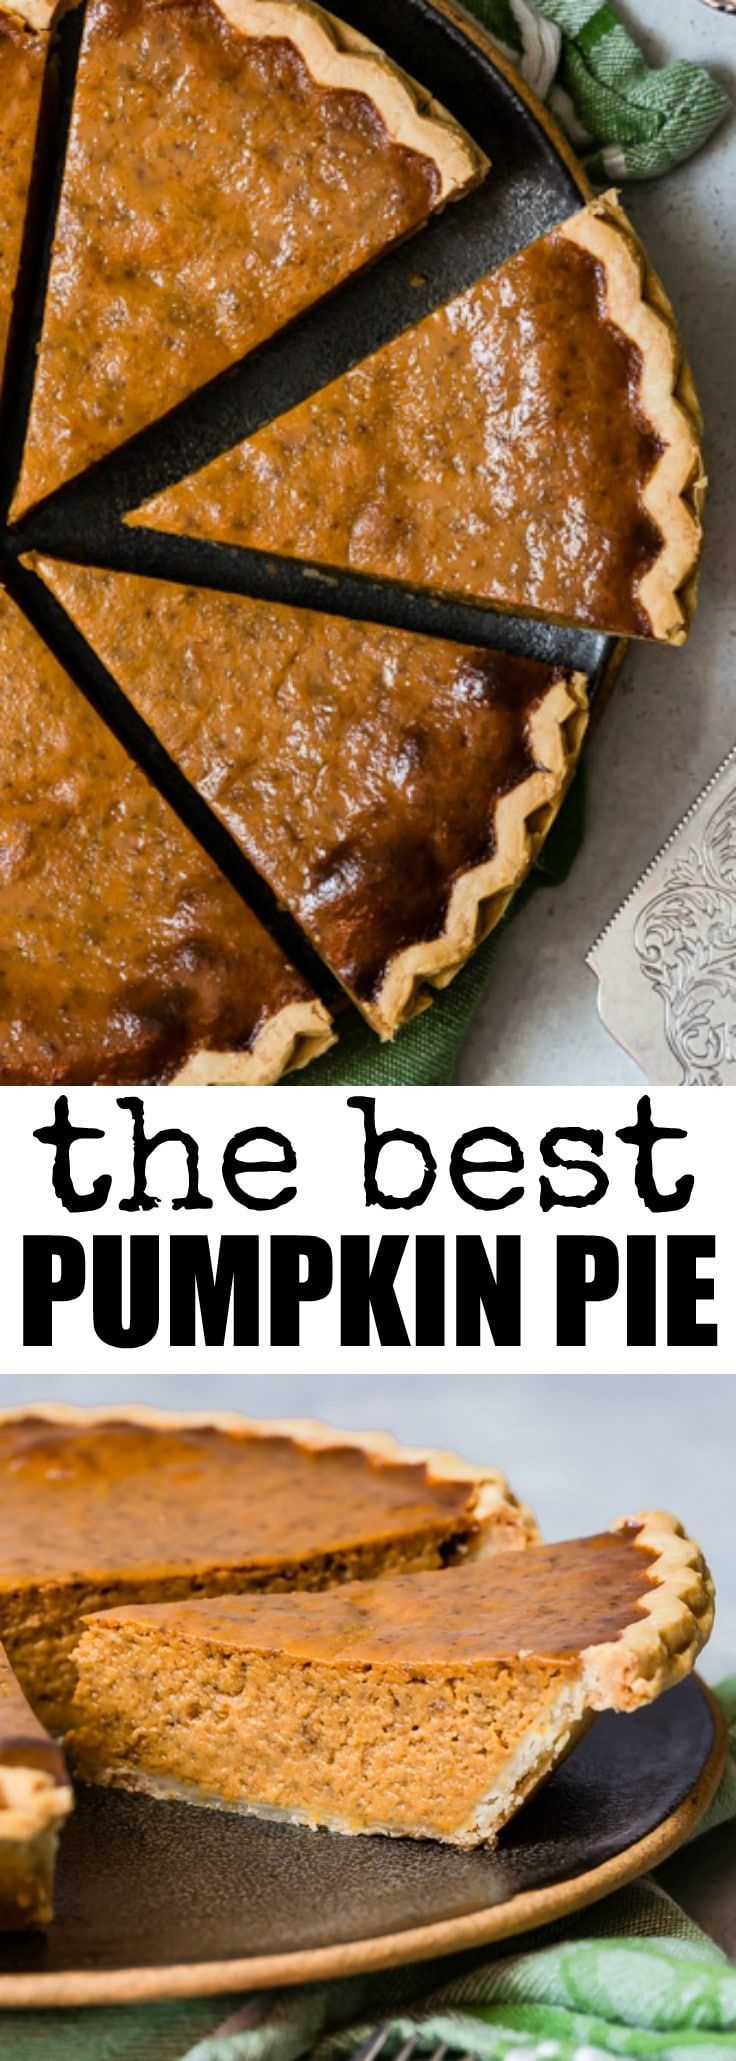 The Best Pumpkin Pie is the one that's easiest to…